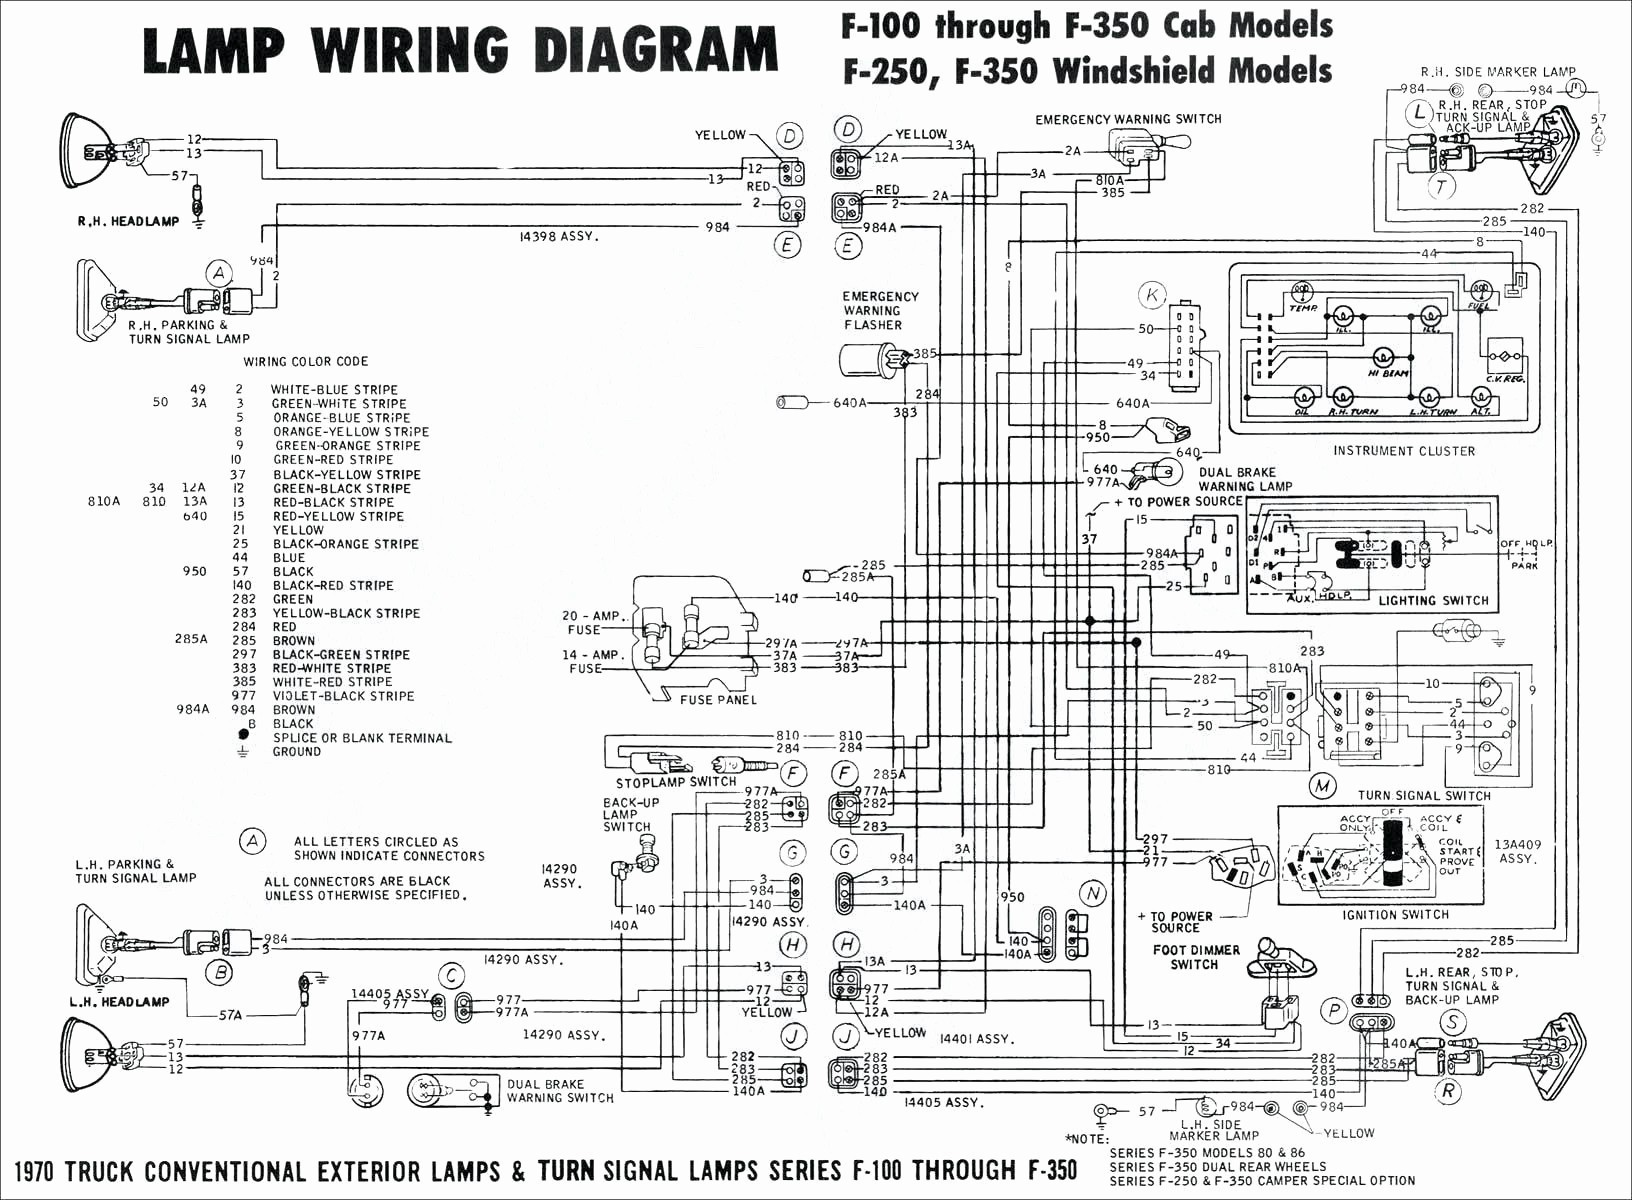 Chevy Truck Wiring Diagrams Free 84 F250 Wiring Diagram Wiring Diagram Datasource Of Chevy Truck Wiring Diagrams Free